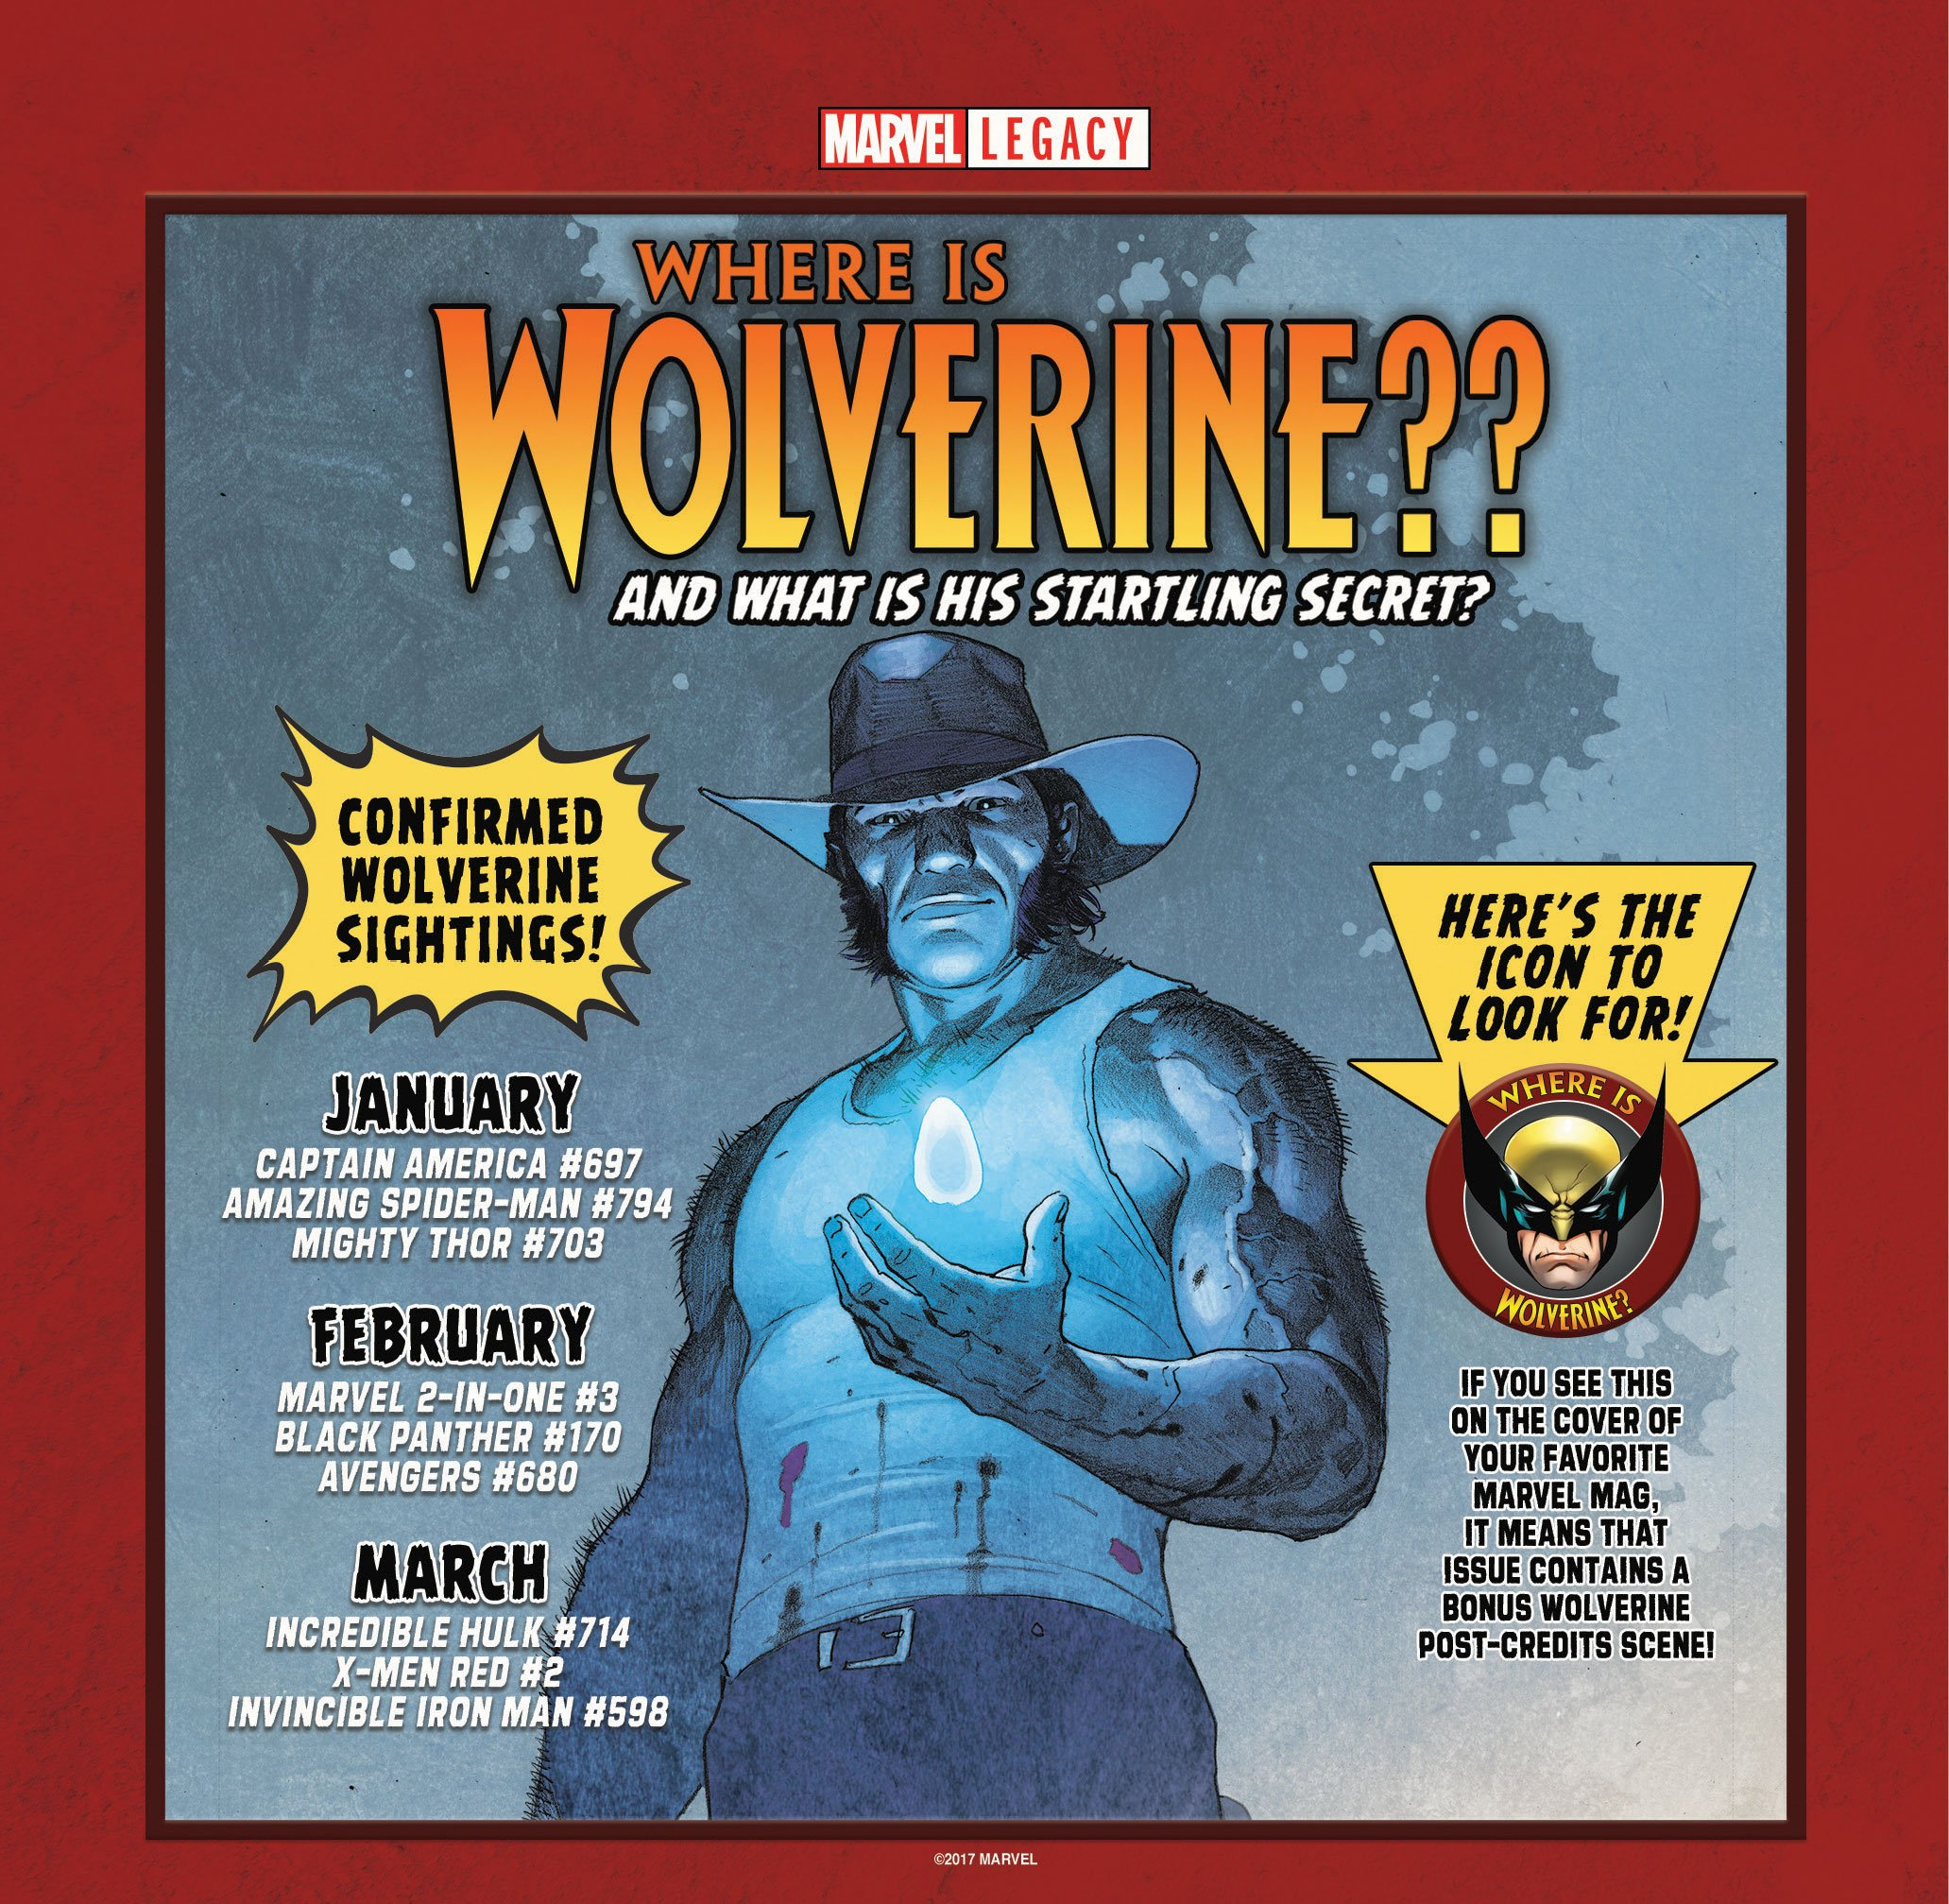 Weekly Wolverine Watch 1:  Captain America #697